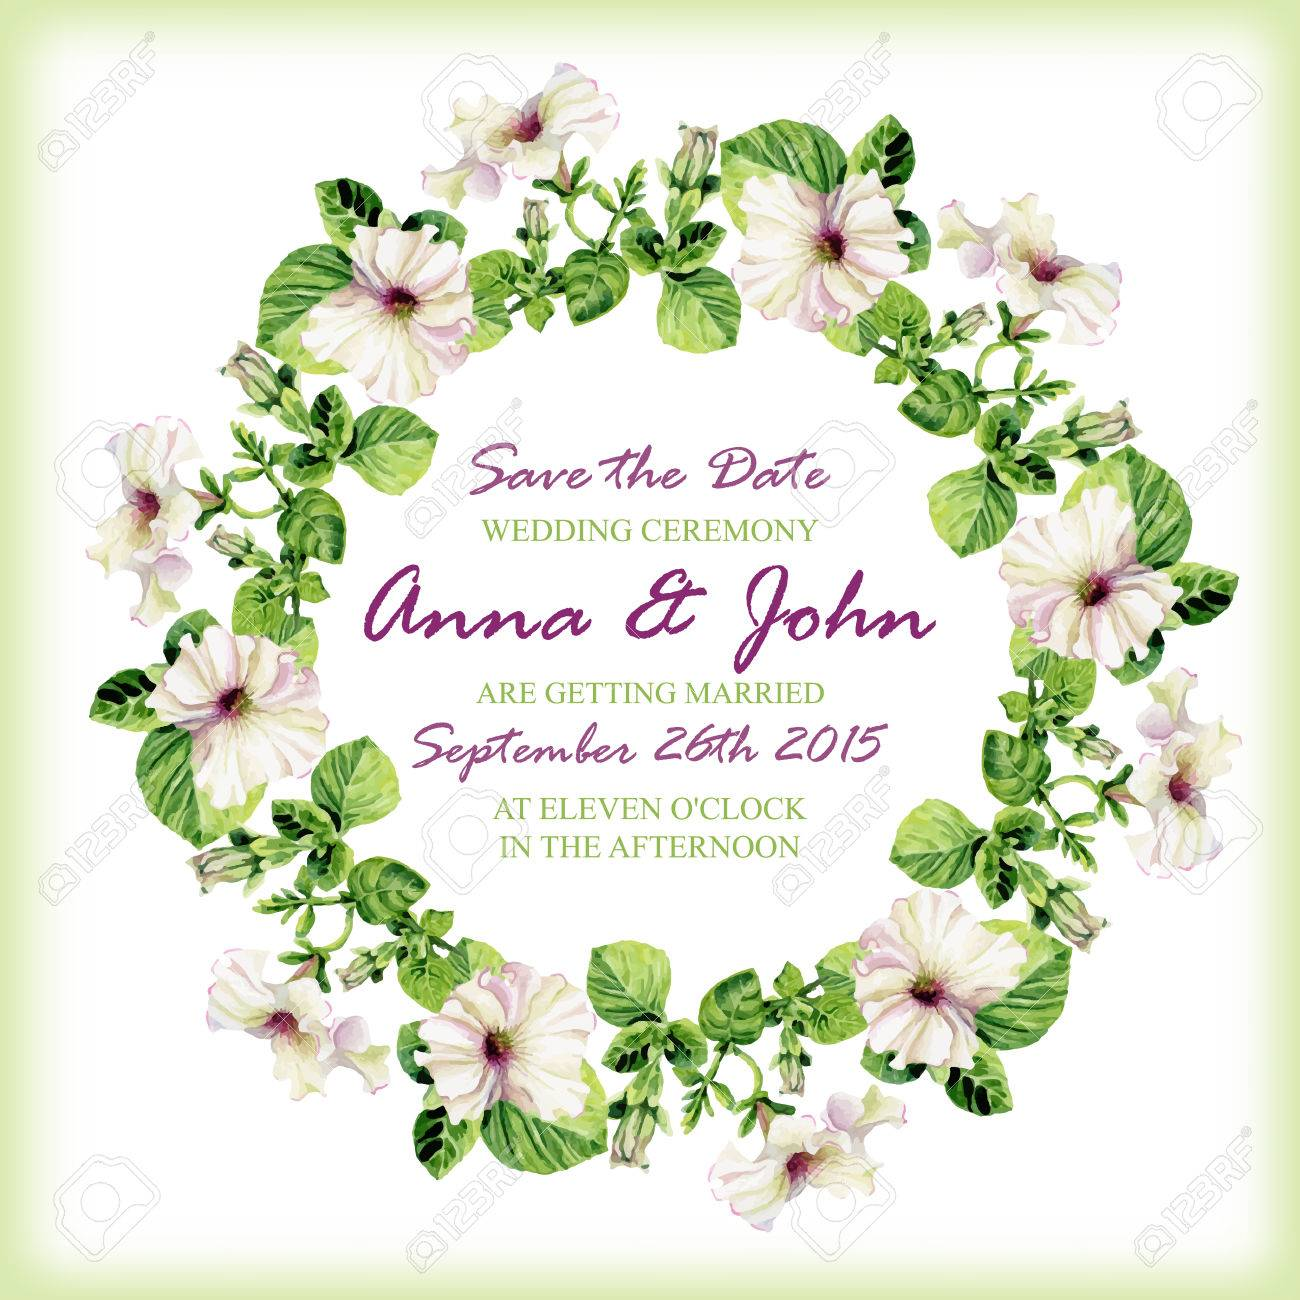 vector wedding invitation design template with watercolor floral circular frame vector background for special occasions u0026 life events save the date